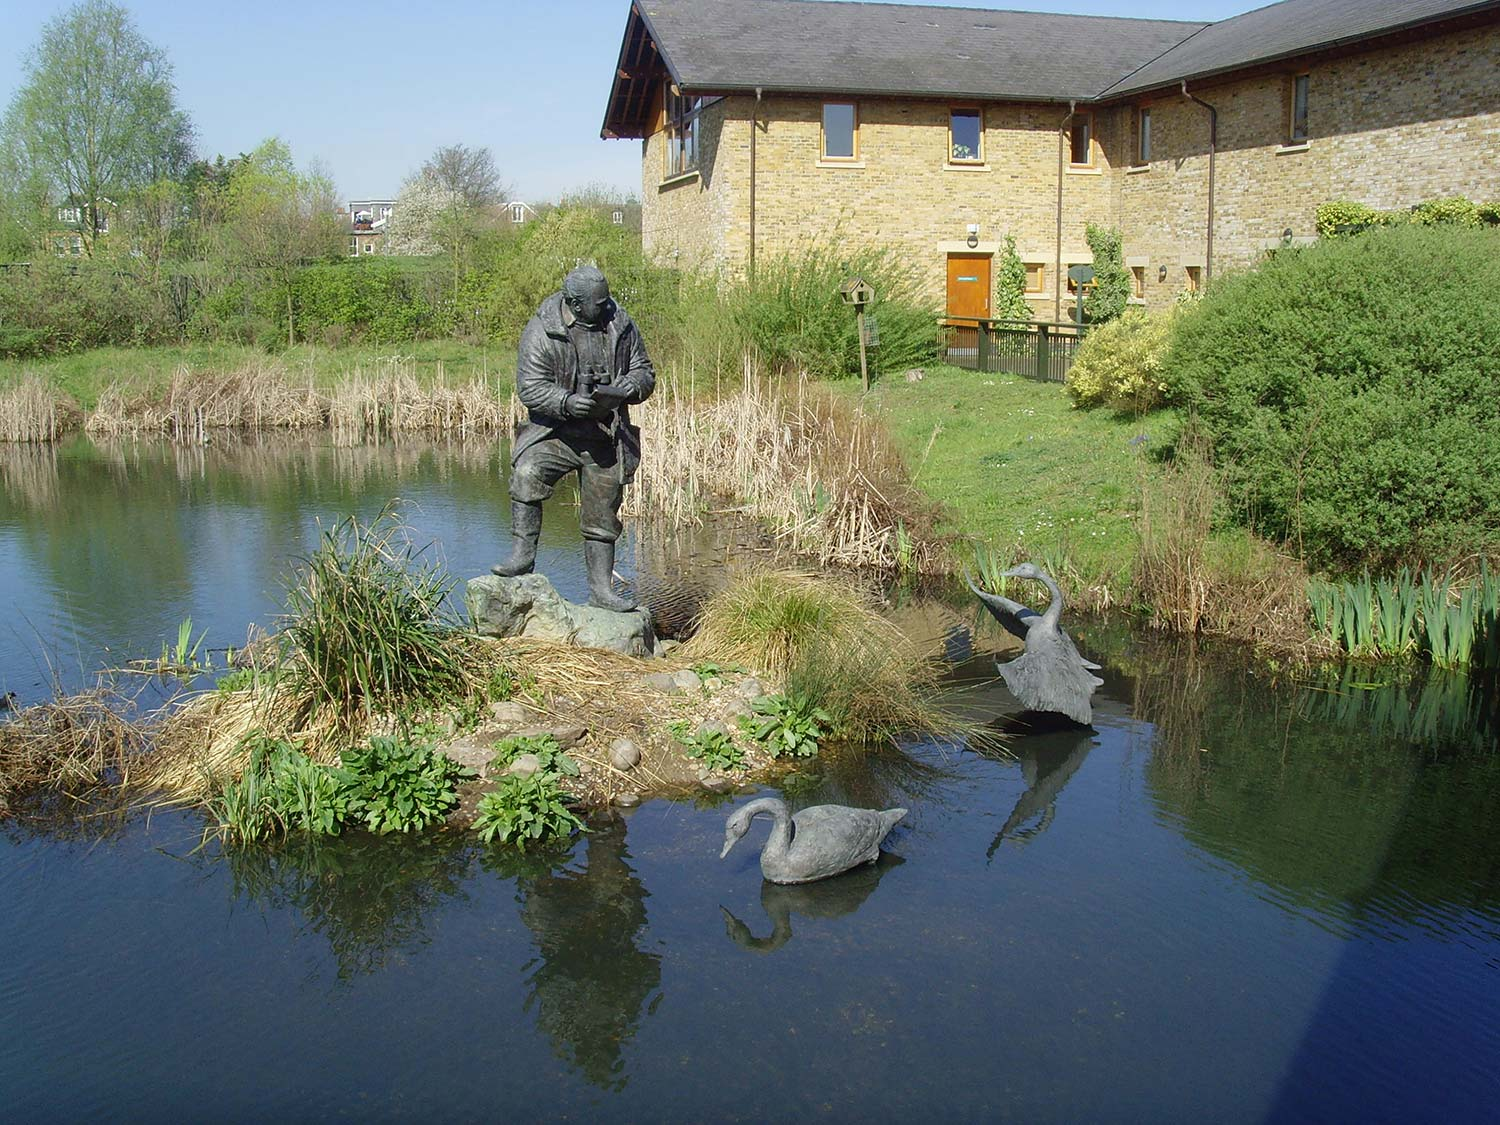 Sir Peter Scott bronze statue in Wetlands Centre Barnes, London.